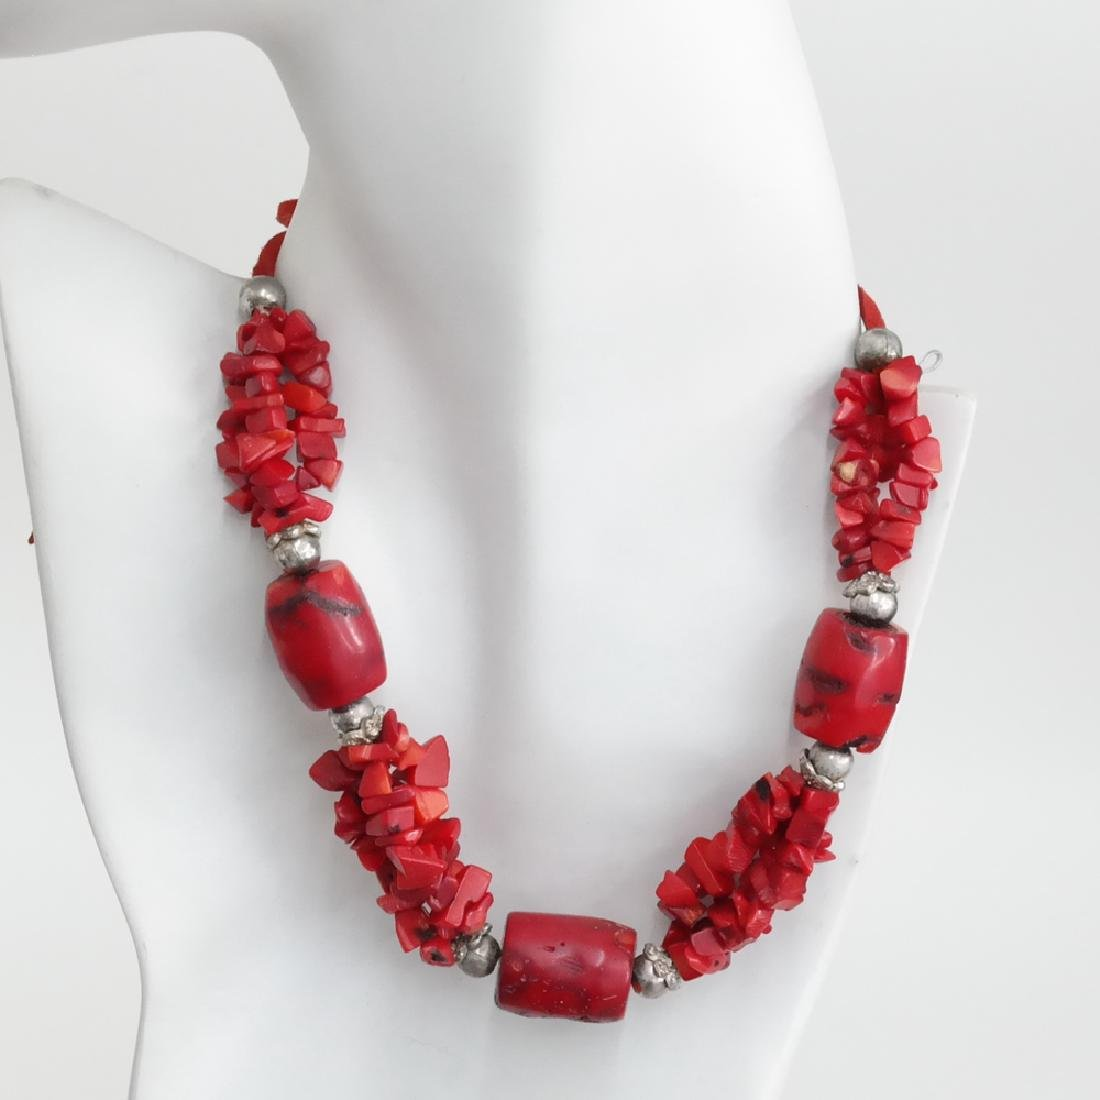 Genuine red BAMBOO CORAL and silver tone beads necklace